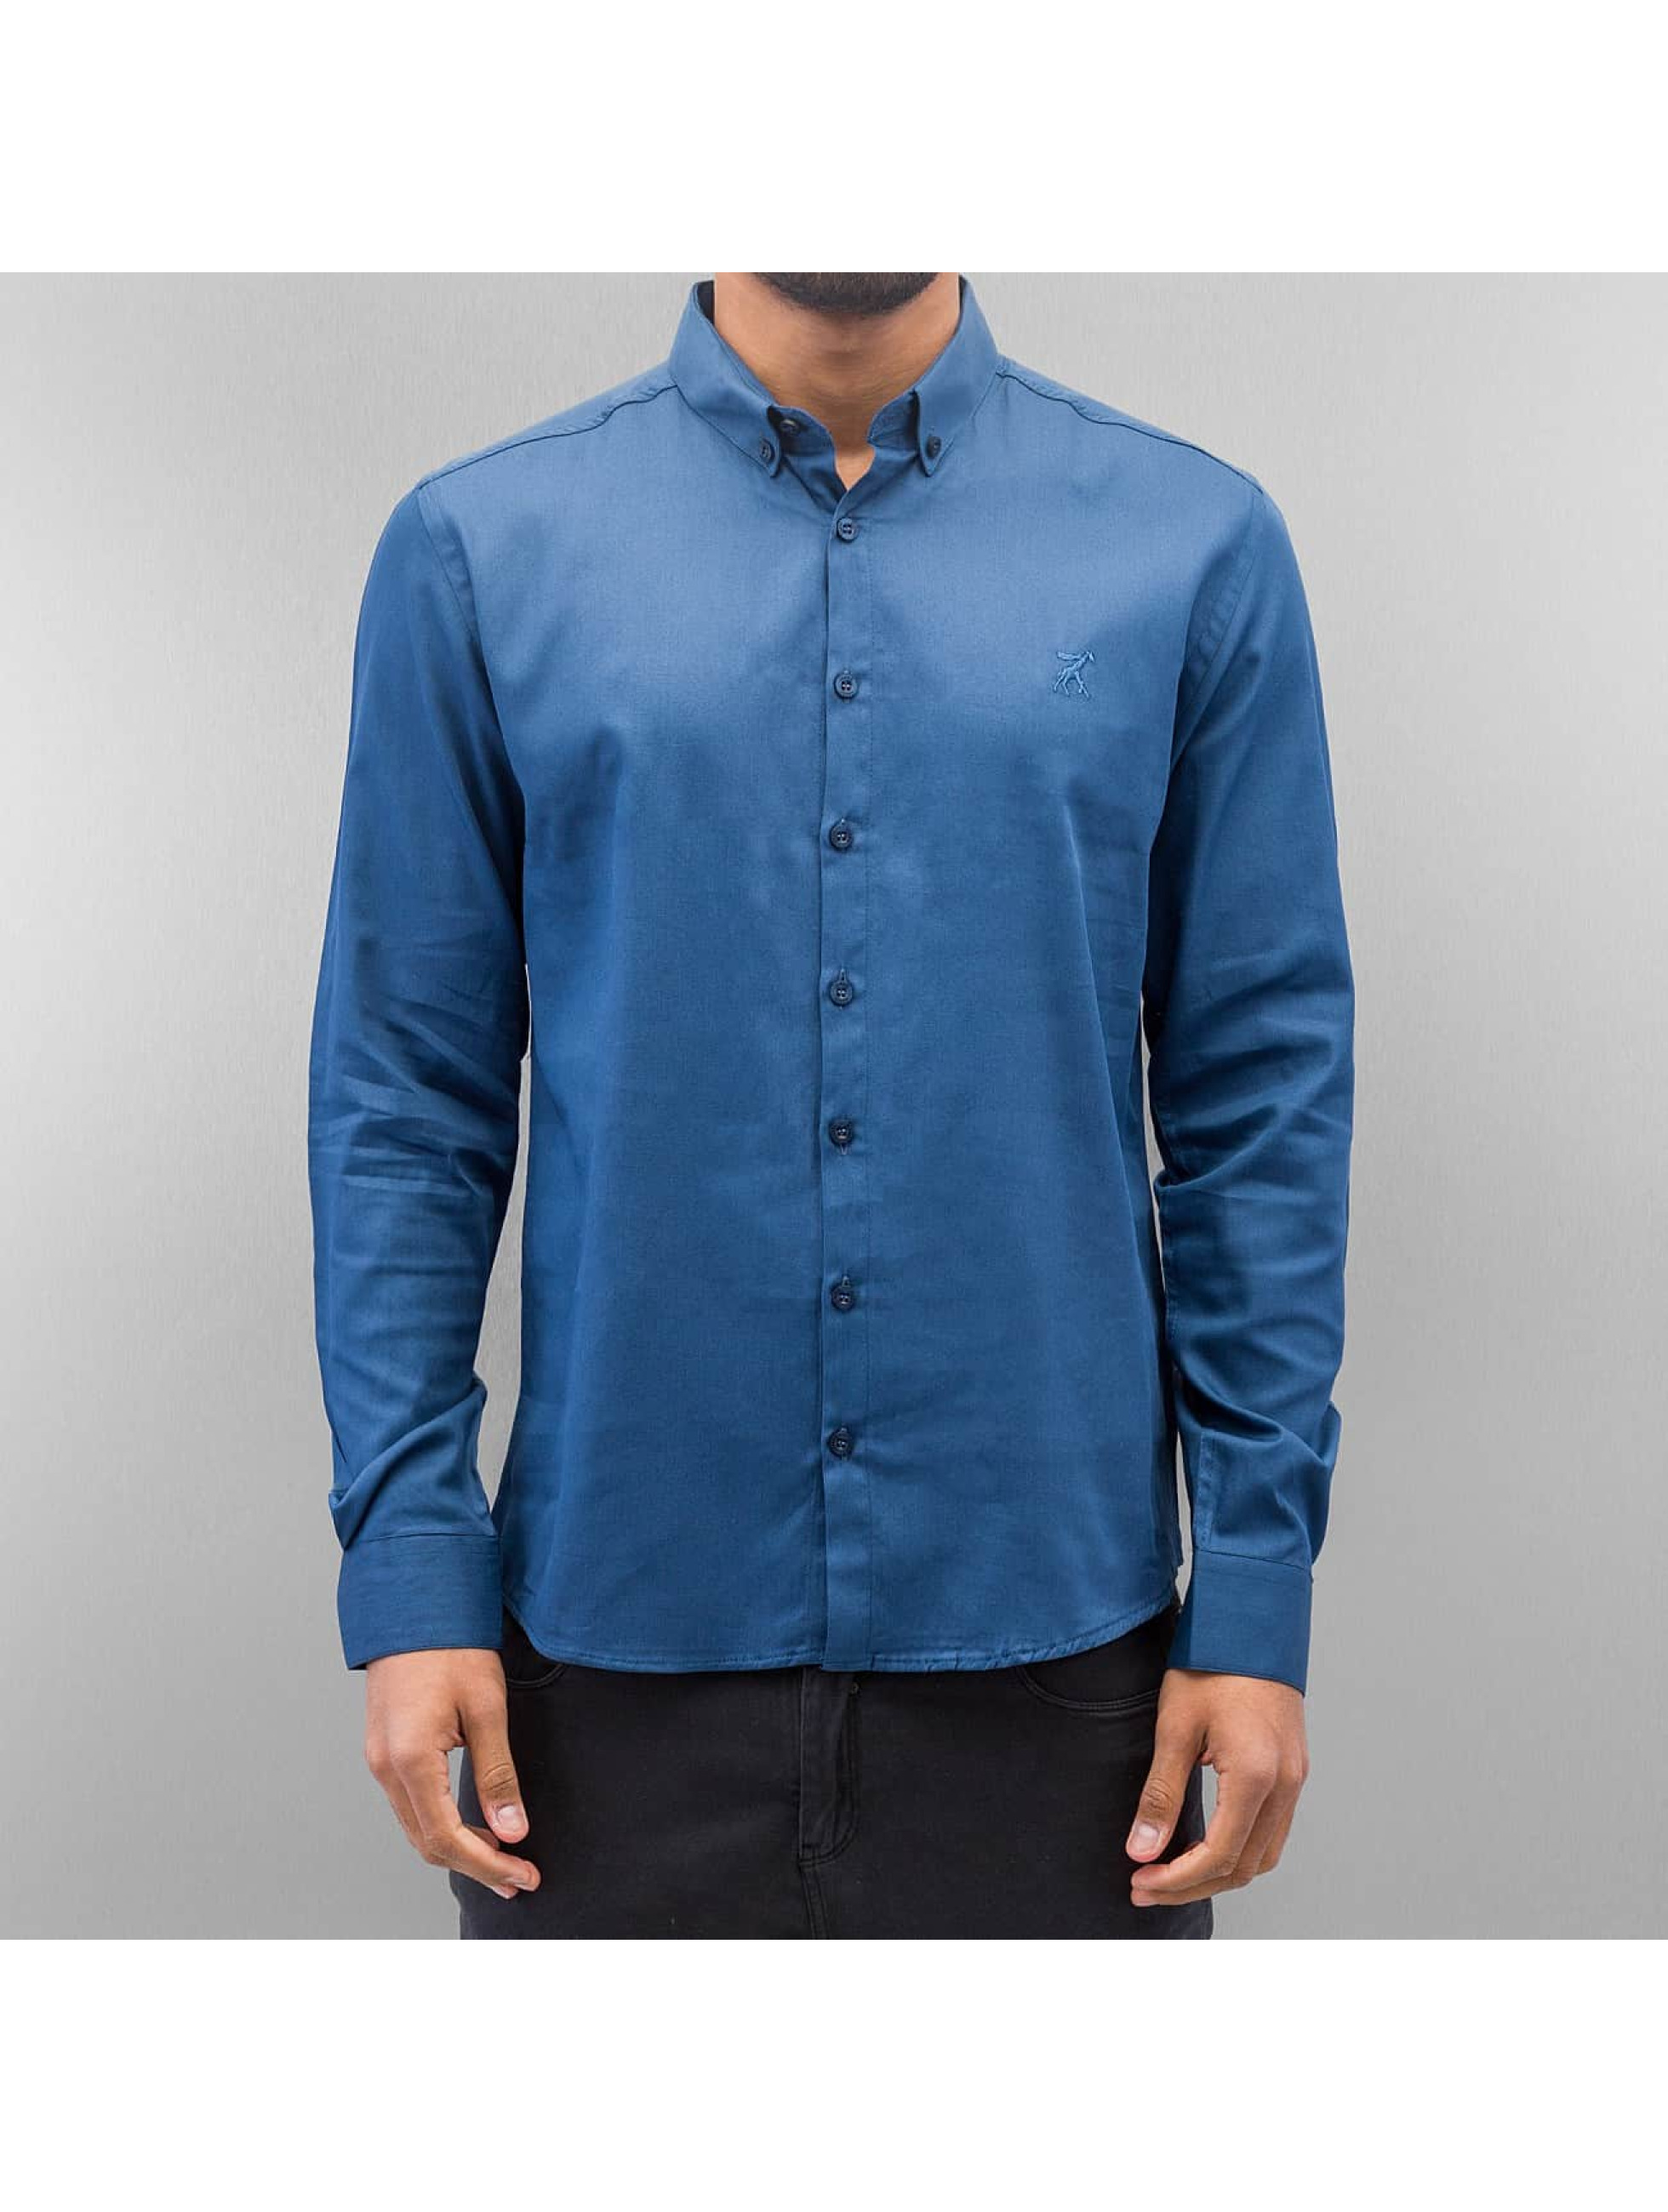 Cazzy Clang / Shirt Norick in blue M